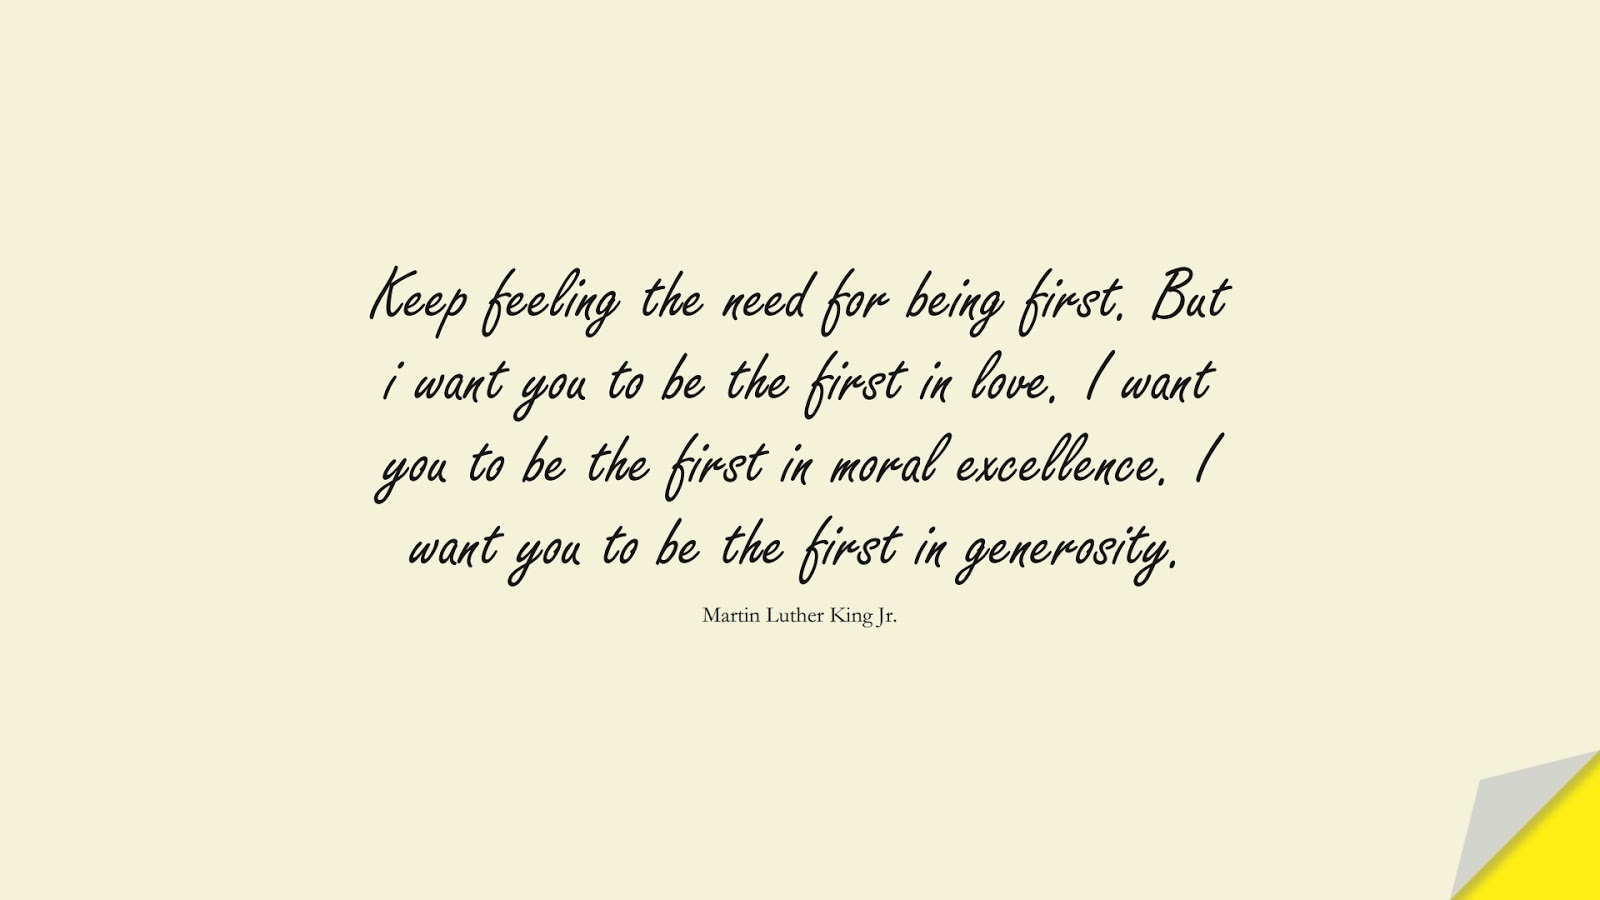 Keep feeling the need for being first. But i want you to be the first in love. I want you to be the first in moral excellence. I want you to be the first in generosity. (Martin Luther King Jr.);  #MartinLutherKingJrQuotes